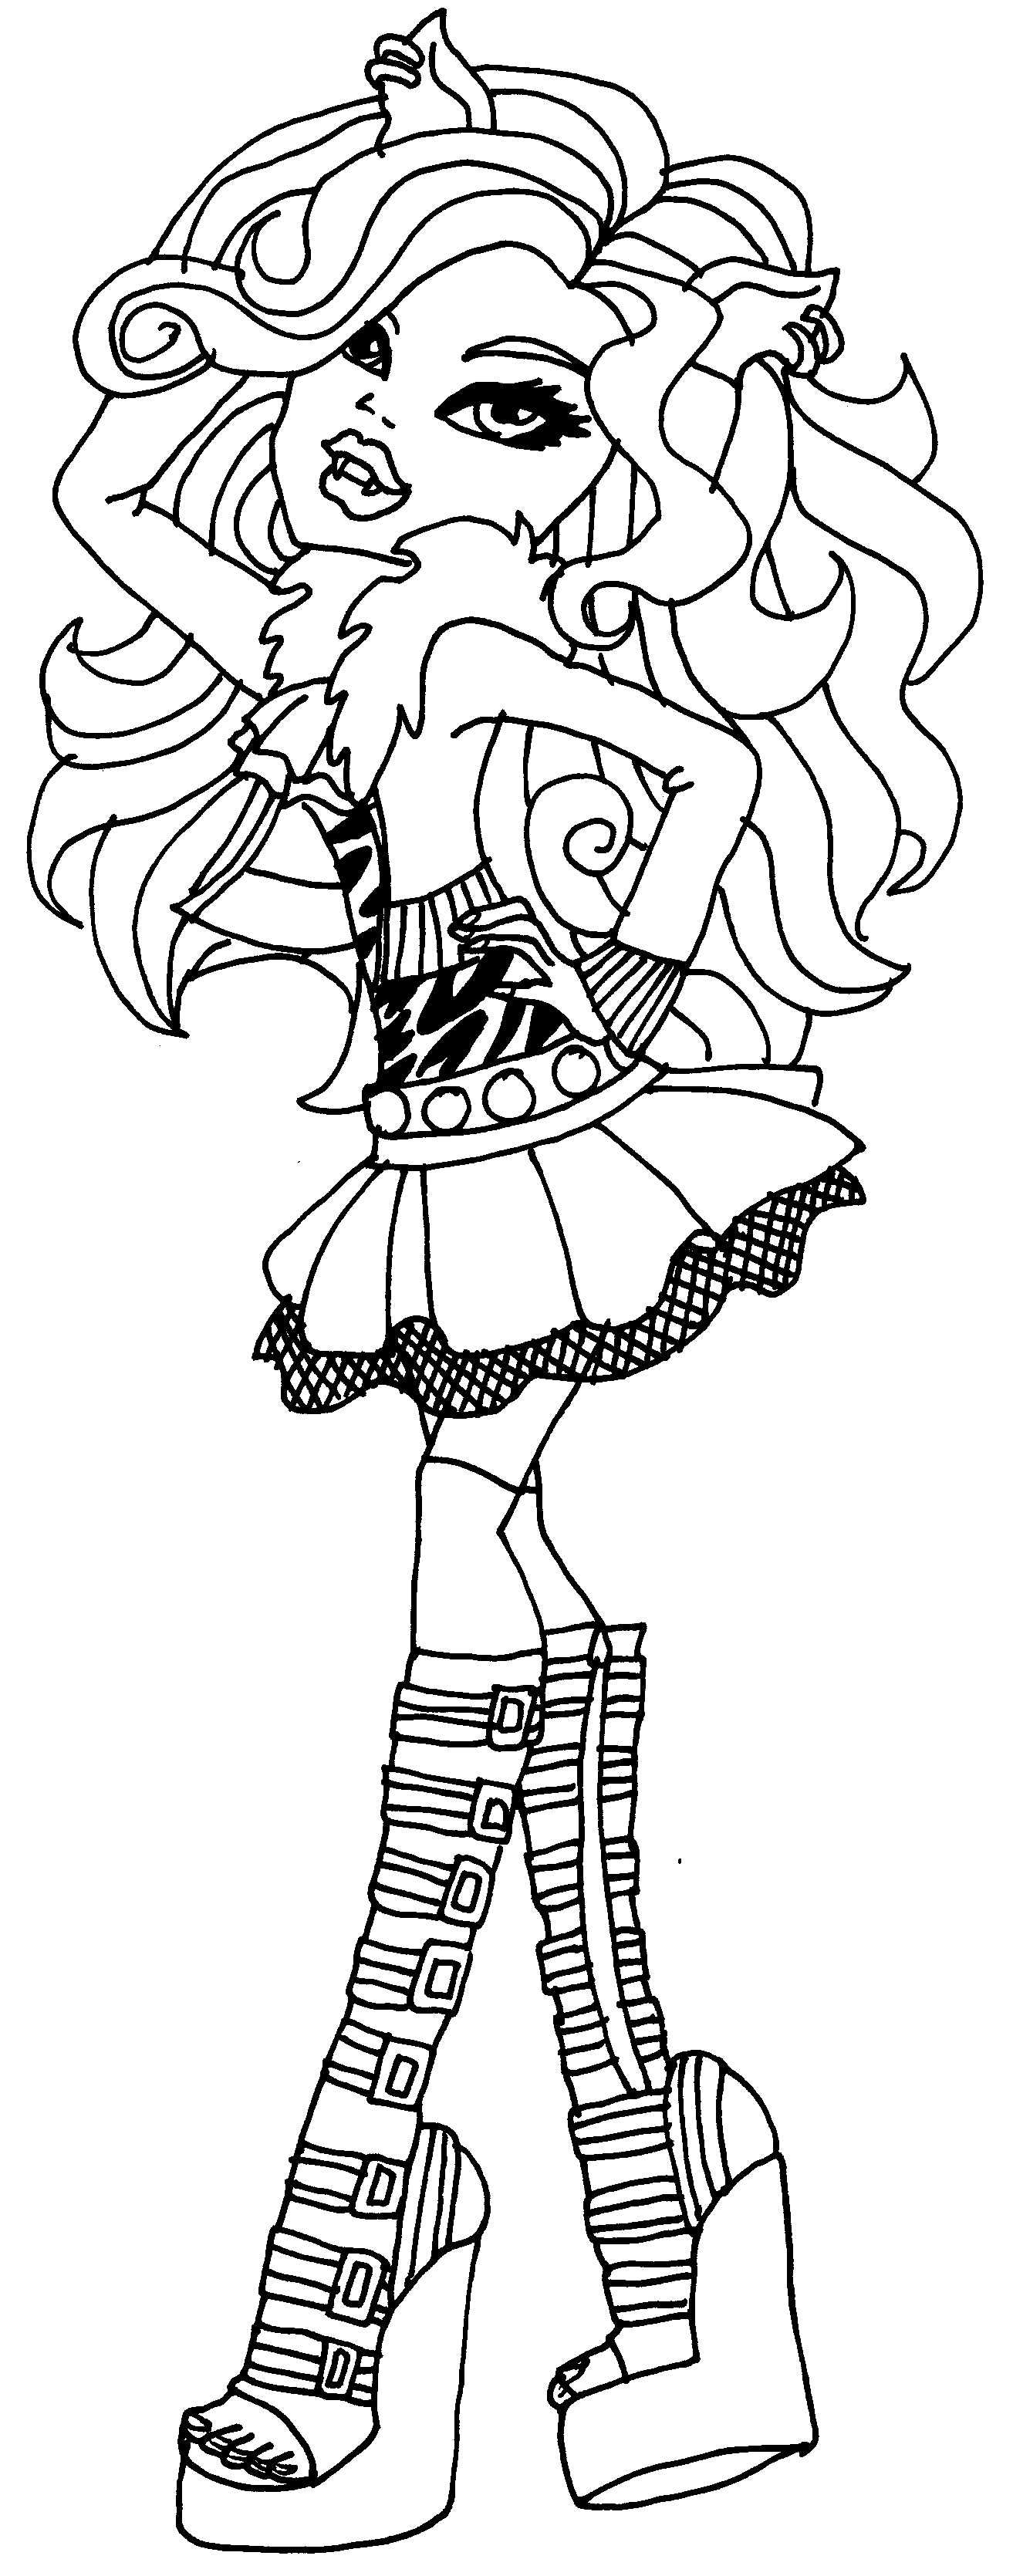 Coloring Pages Clawdeen Coloring Pages monster high clawdeen coloring pages eassume com auromas